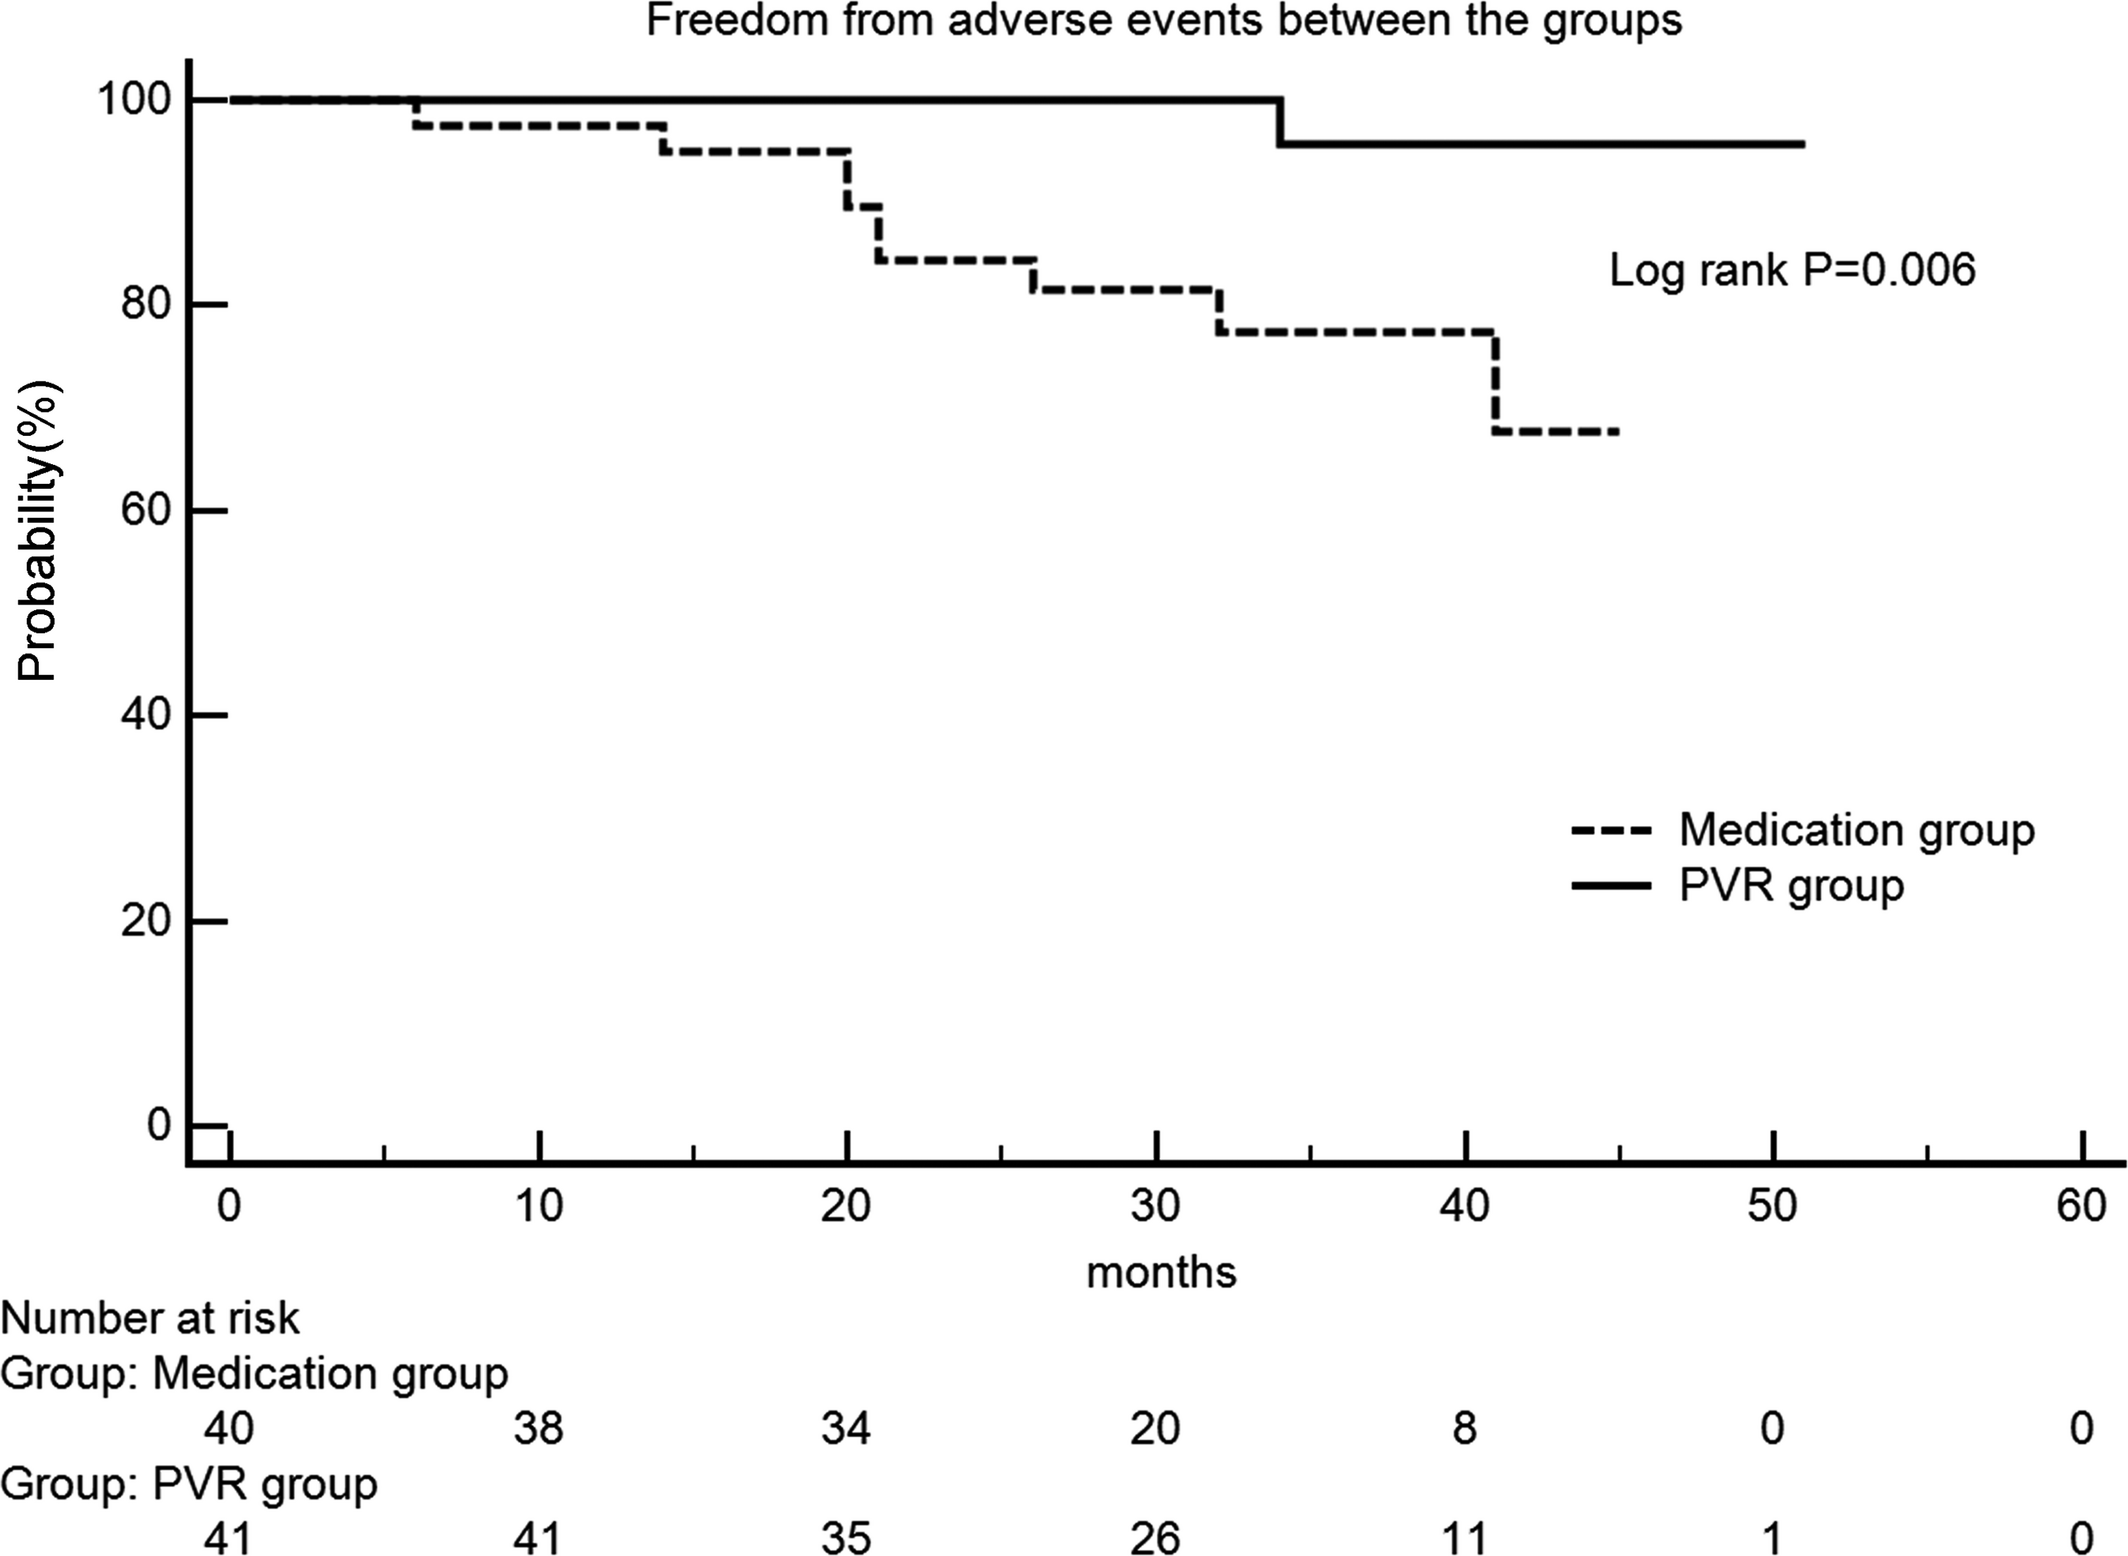 Whether Pulmonary Valve Replacement In Asymptomatic